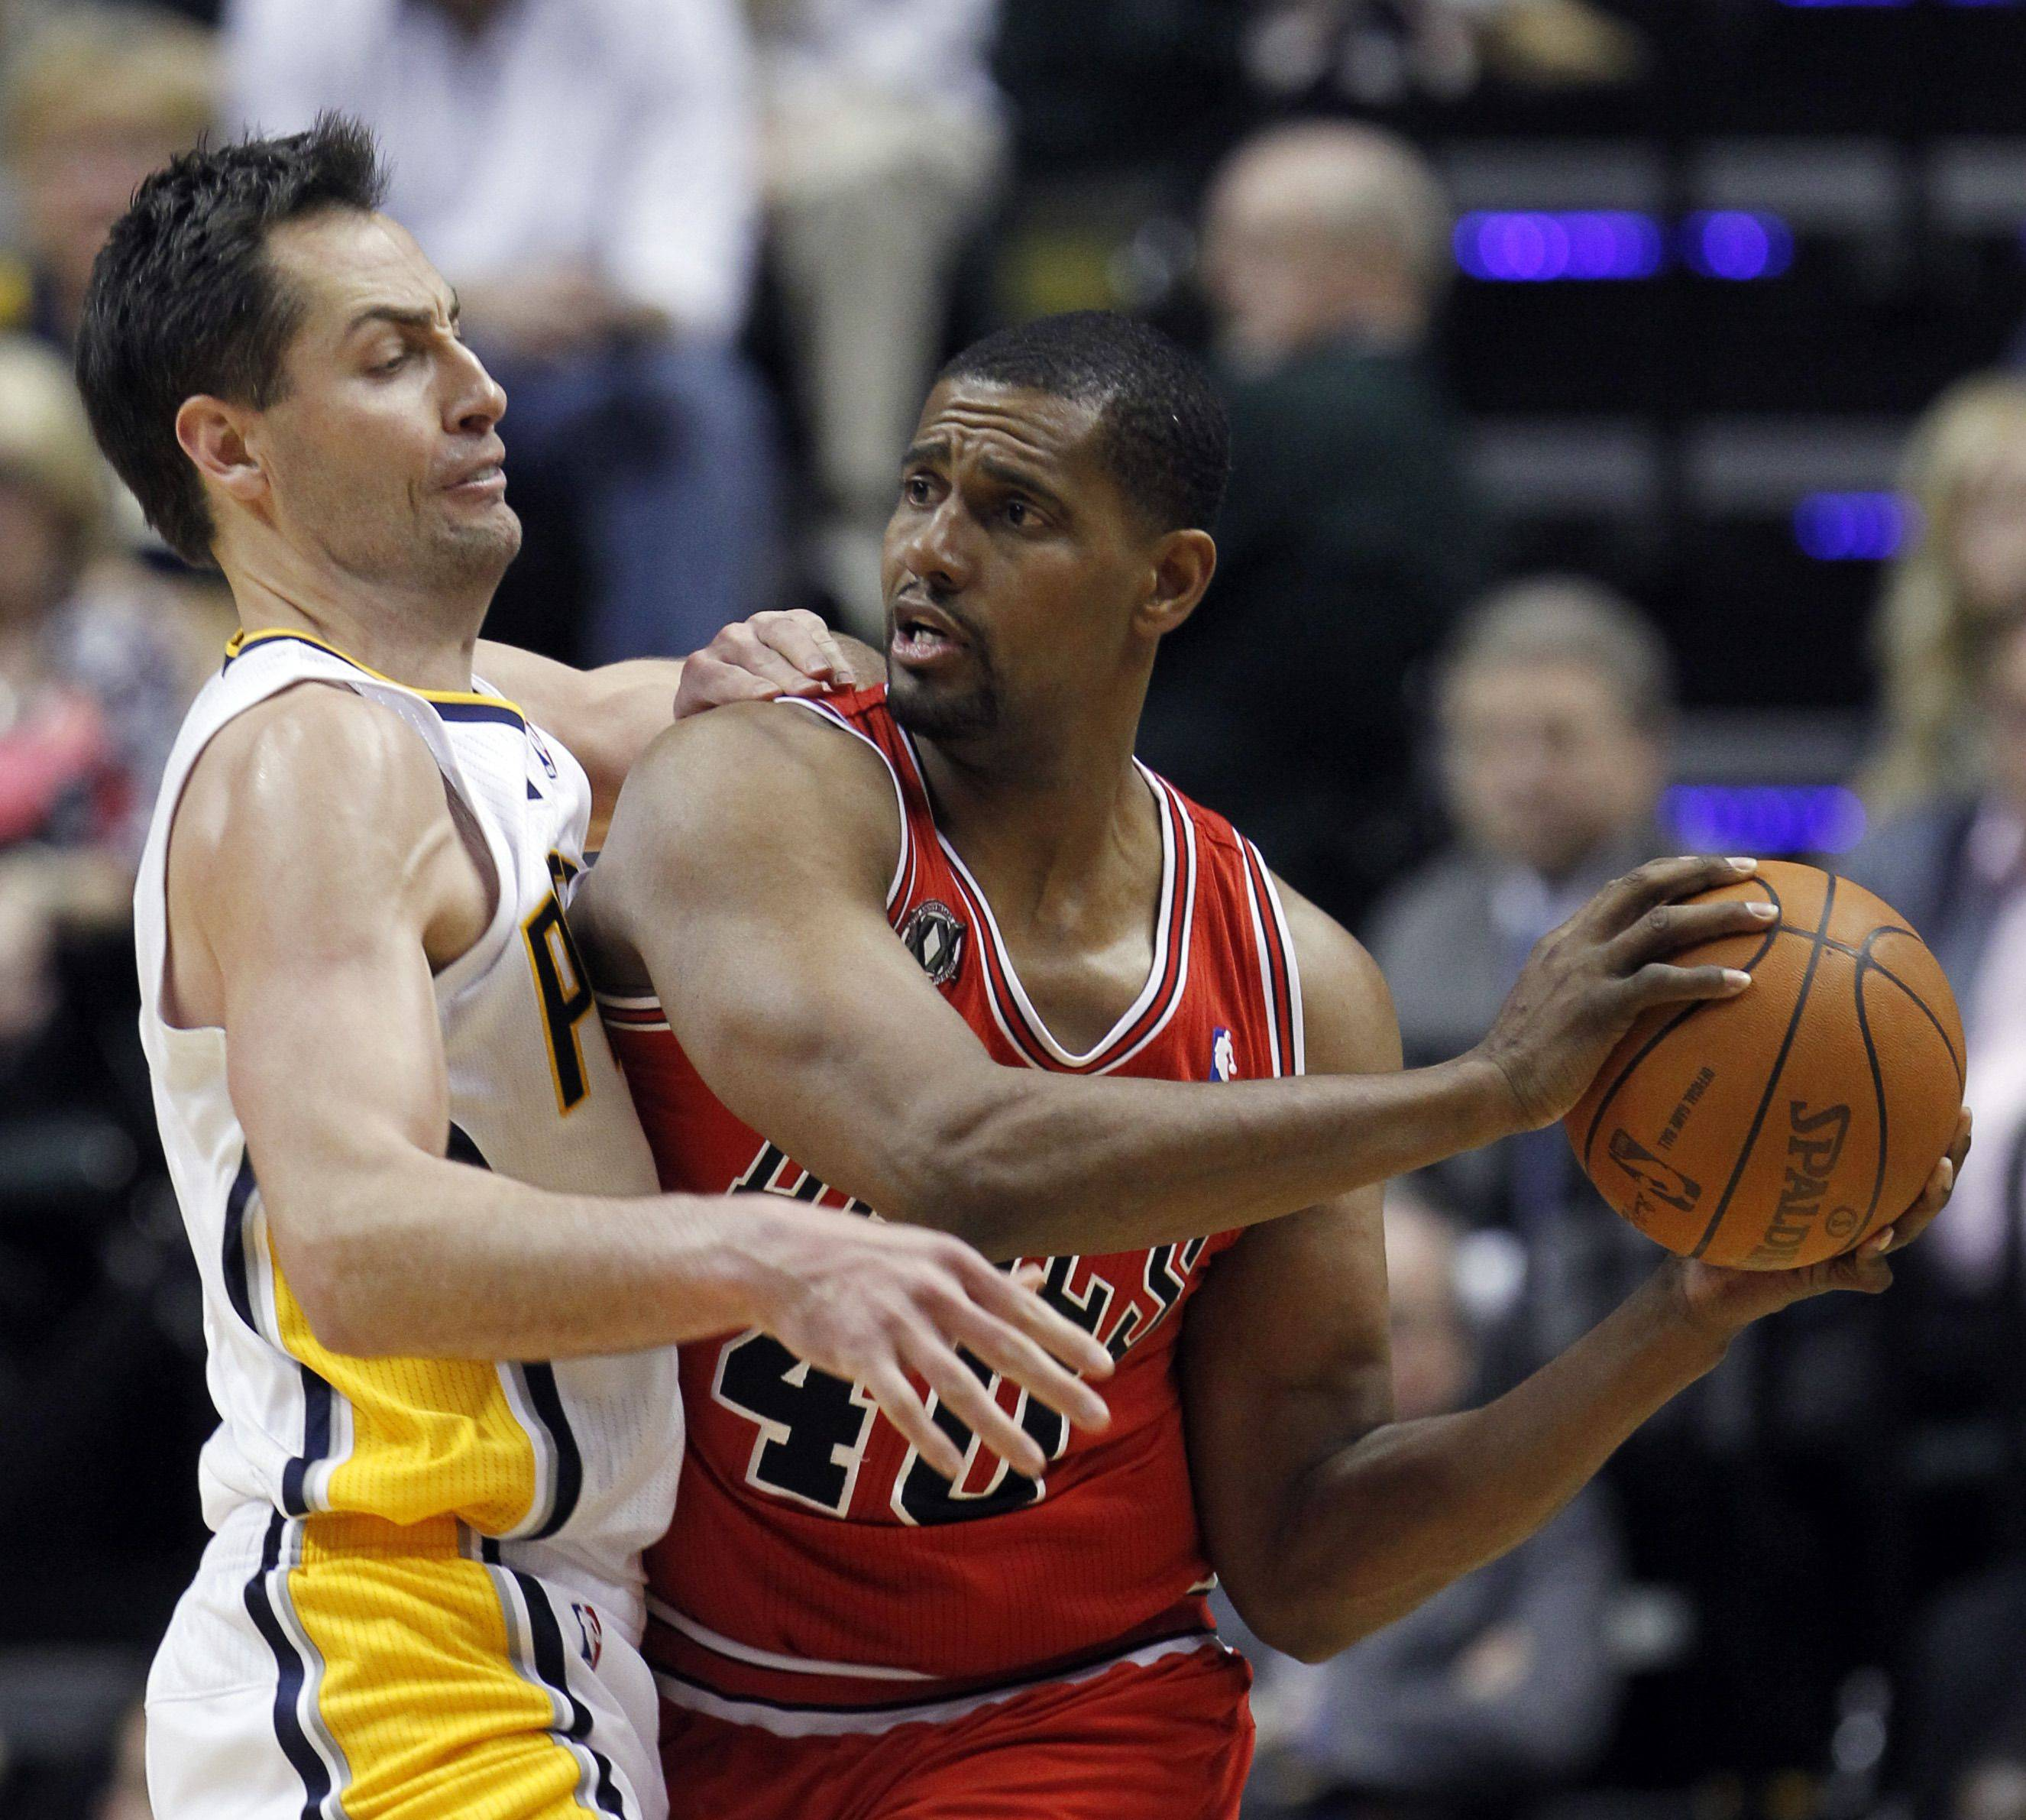 Chicago Bulls' Kurt Thomas (40) tries to pass the ball around Indiana Pacers' Jeff Foster during the second half.